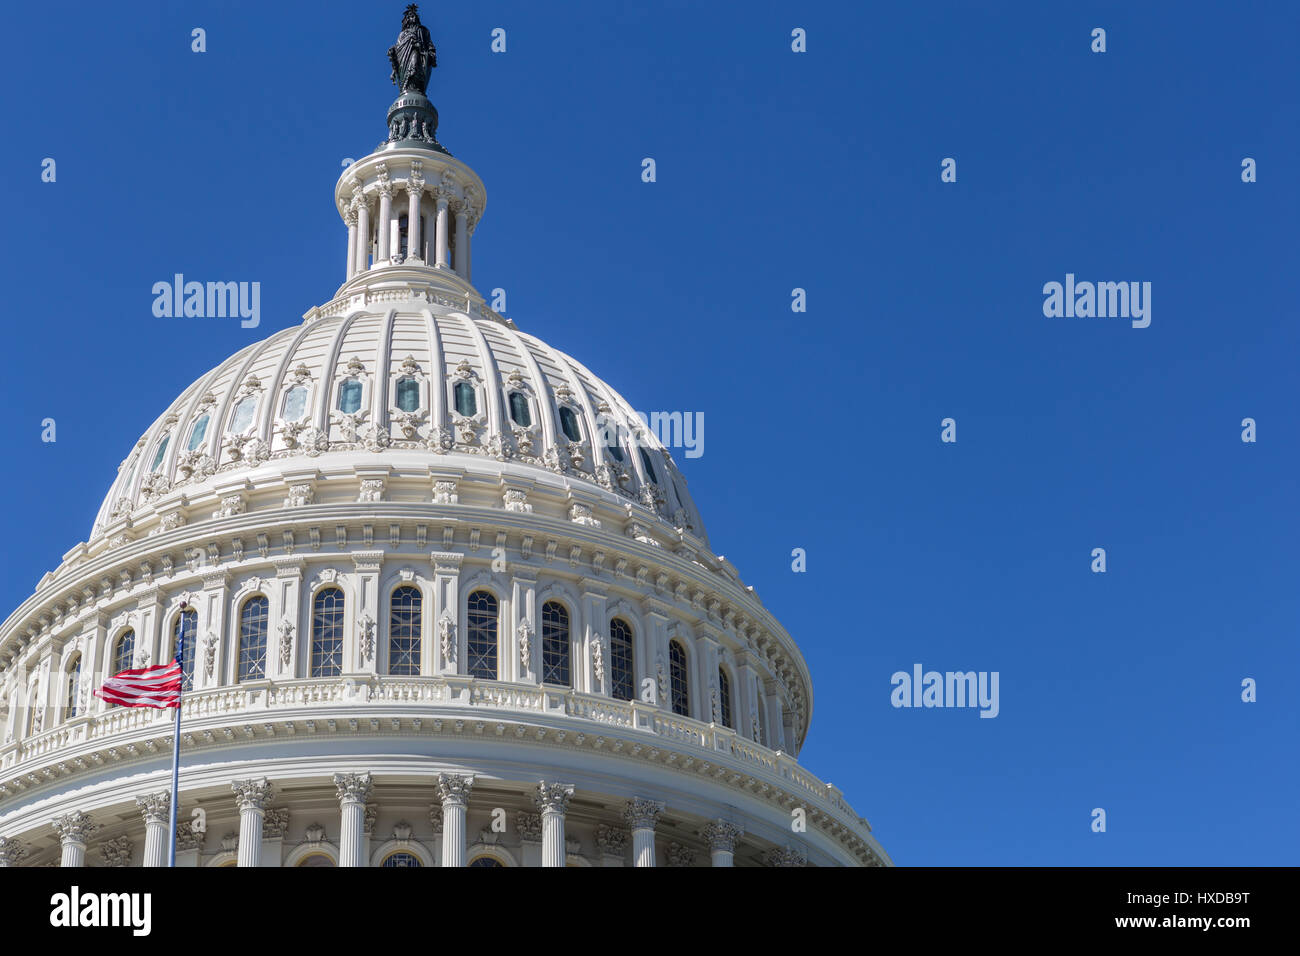 An offset view of the dome of the U.S. Capitol Building in Washington, DC. - Stock Image